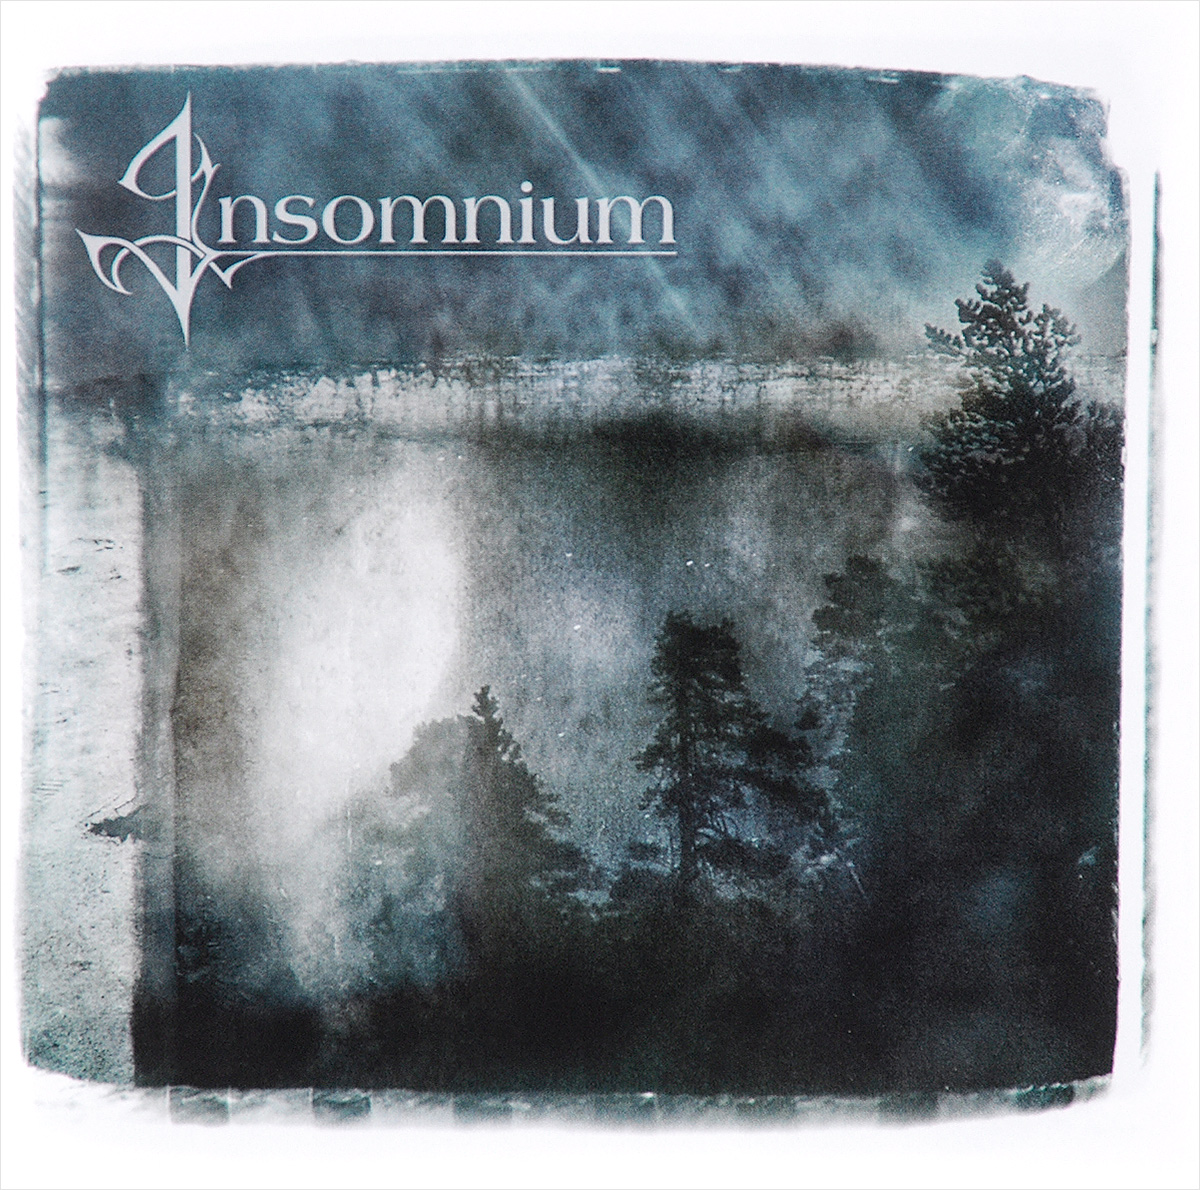 Insomnium Insomnium. Since The Day All Came Down